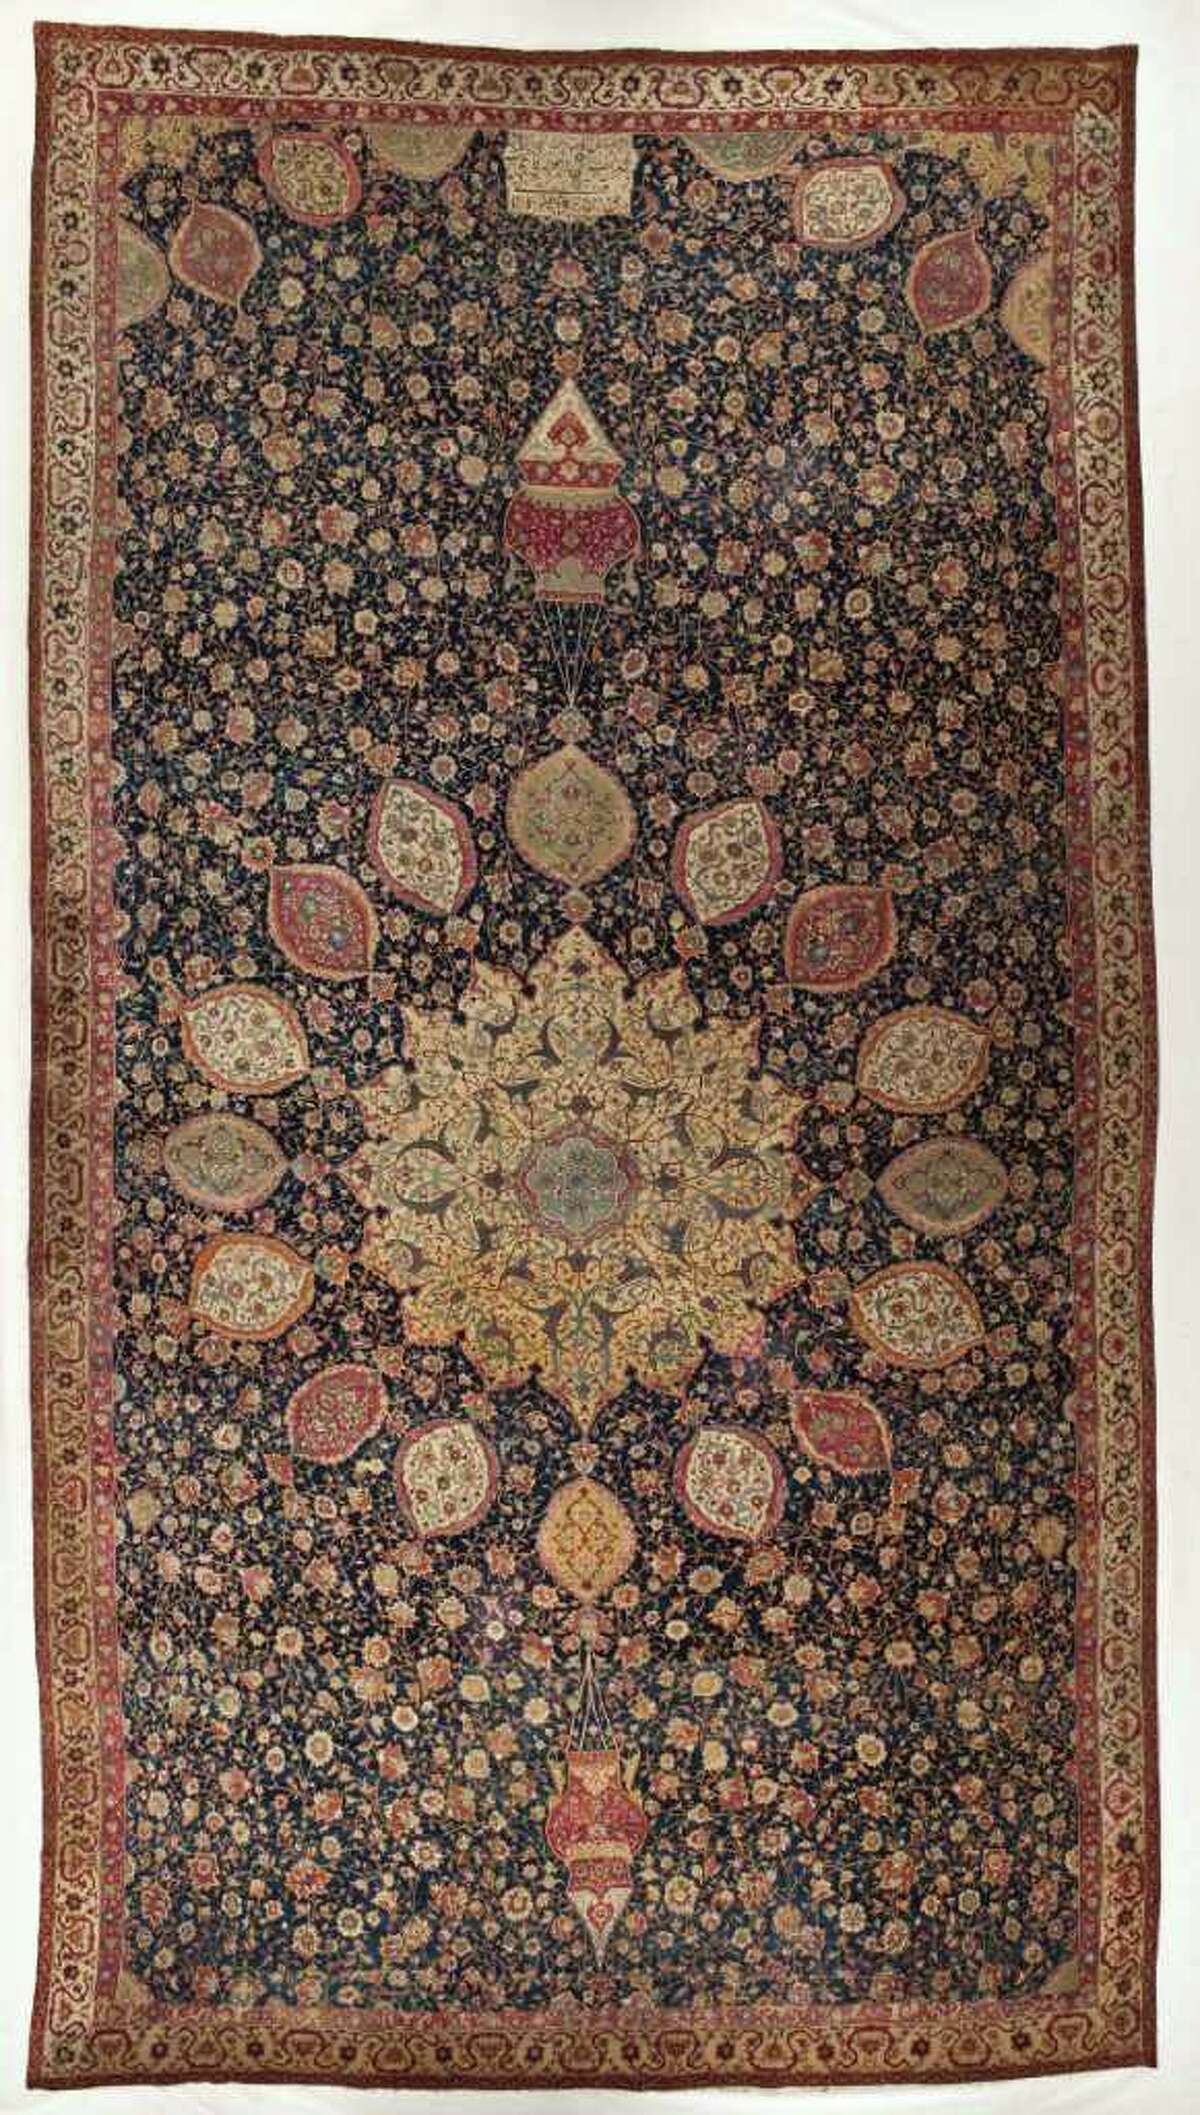 Ardabil Carpet Tabriz, Iran Dated 1539-40 (A.H. 946) Silk plain weave foundation with wool knotted pile Los Angeles County Museum of Art, gift of J. Paul Getty